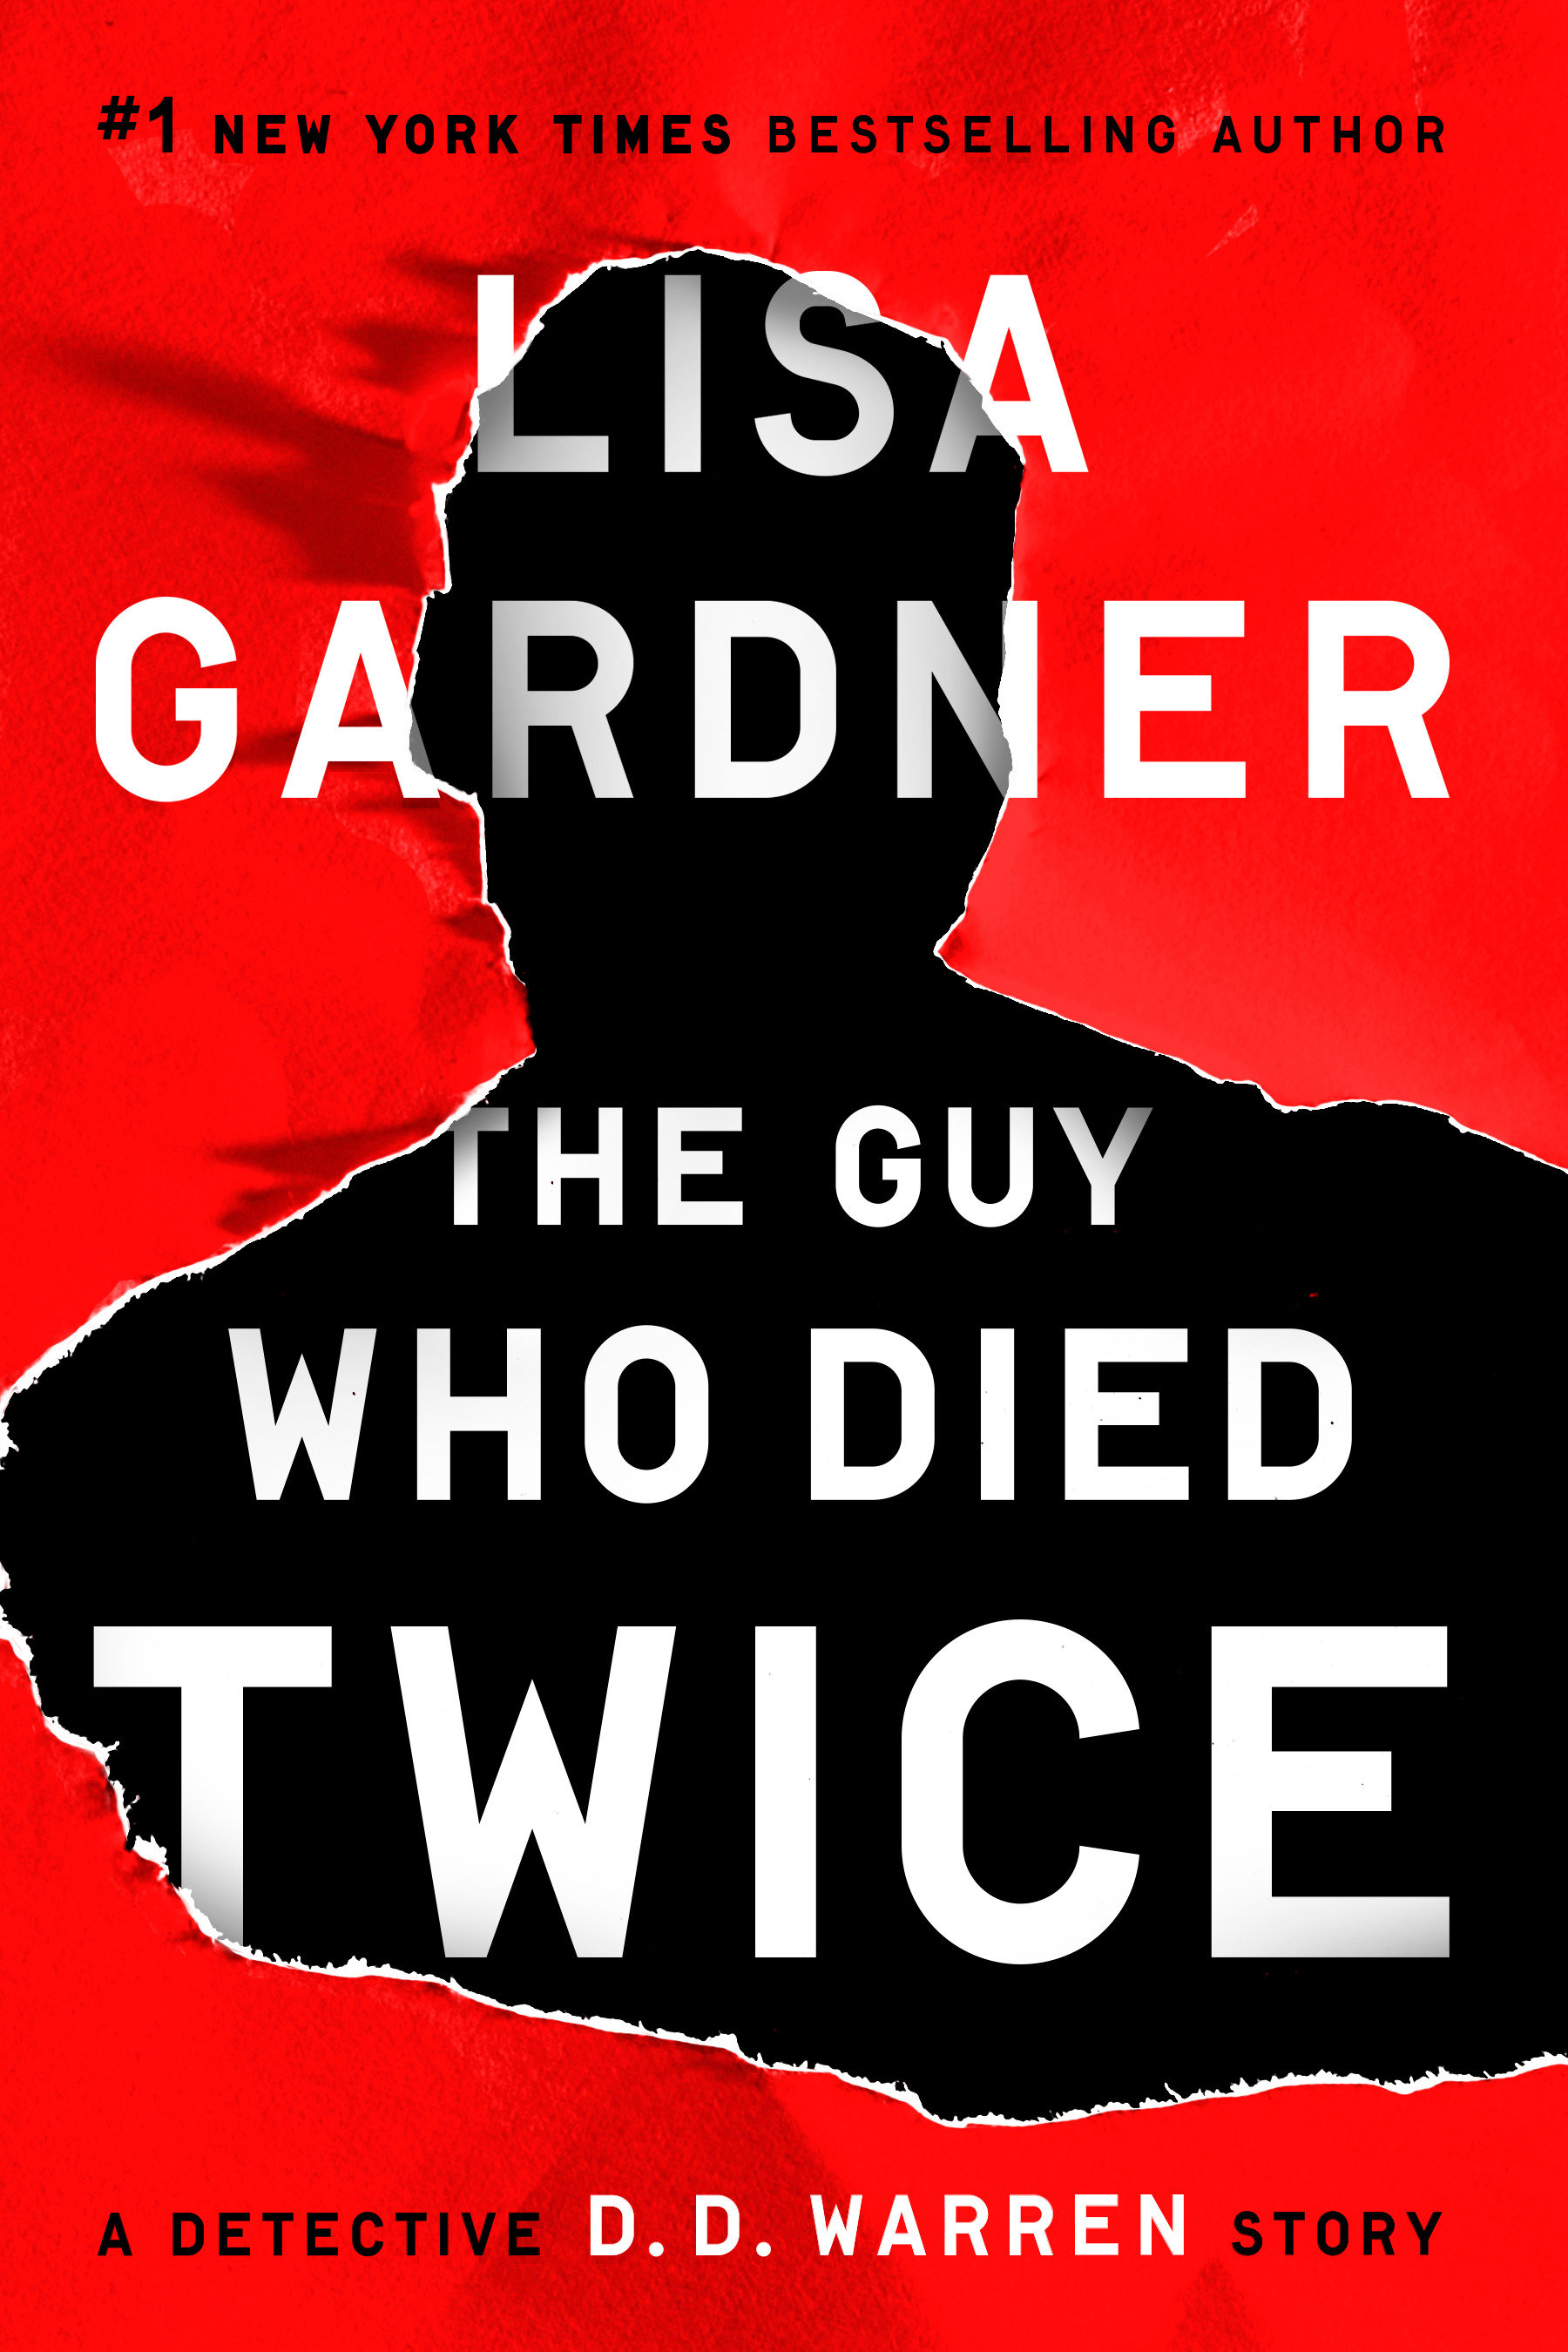 The Guy Who Died Twice A Detective D.D. Warren Story